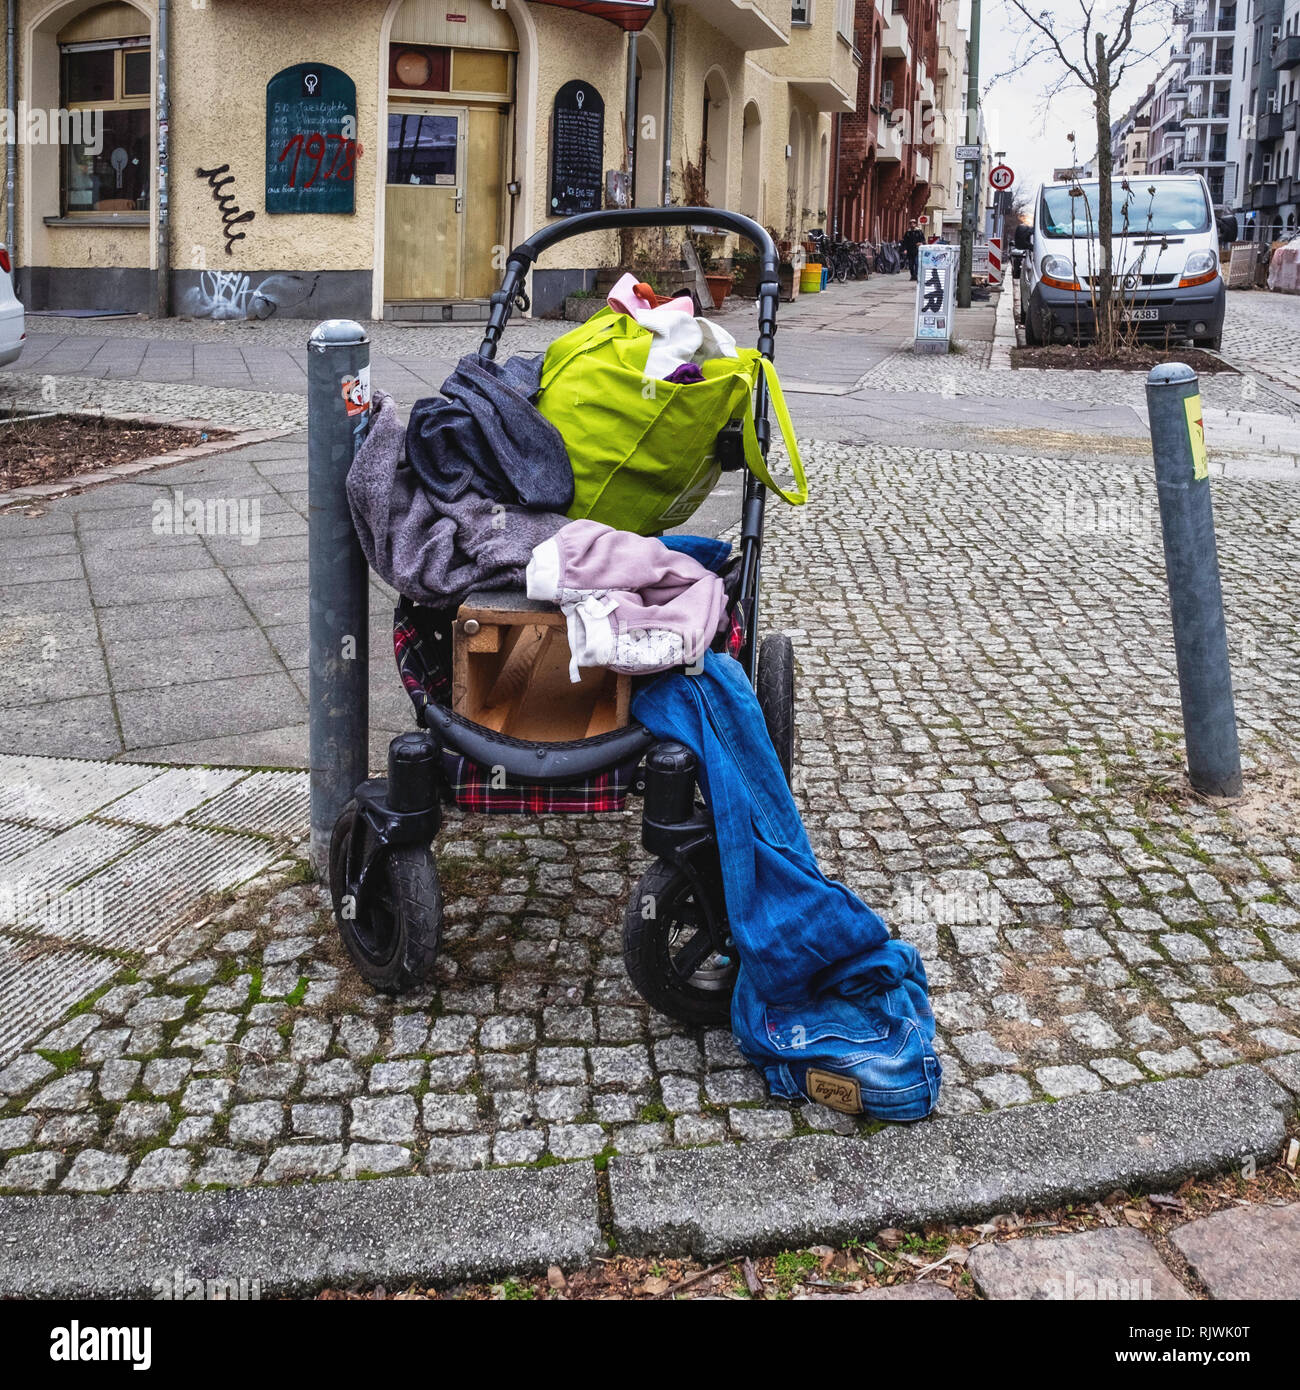 Berlin, Friedrichshain. Child's pram and old second-hand used clothing dumped on pavement. No longer needed & abandoned clothes - Stock Image